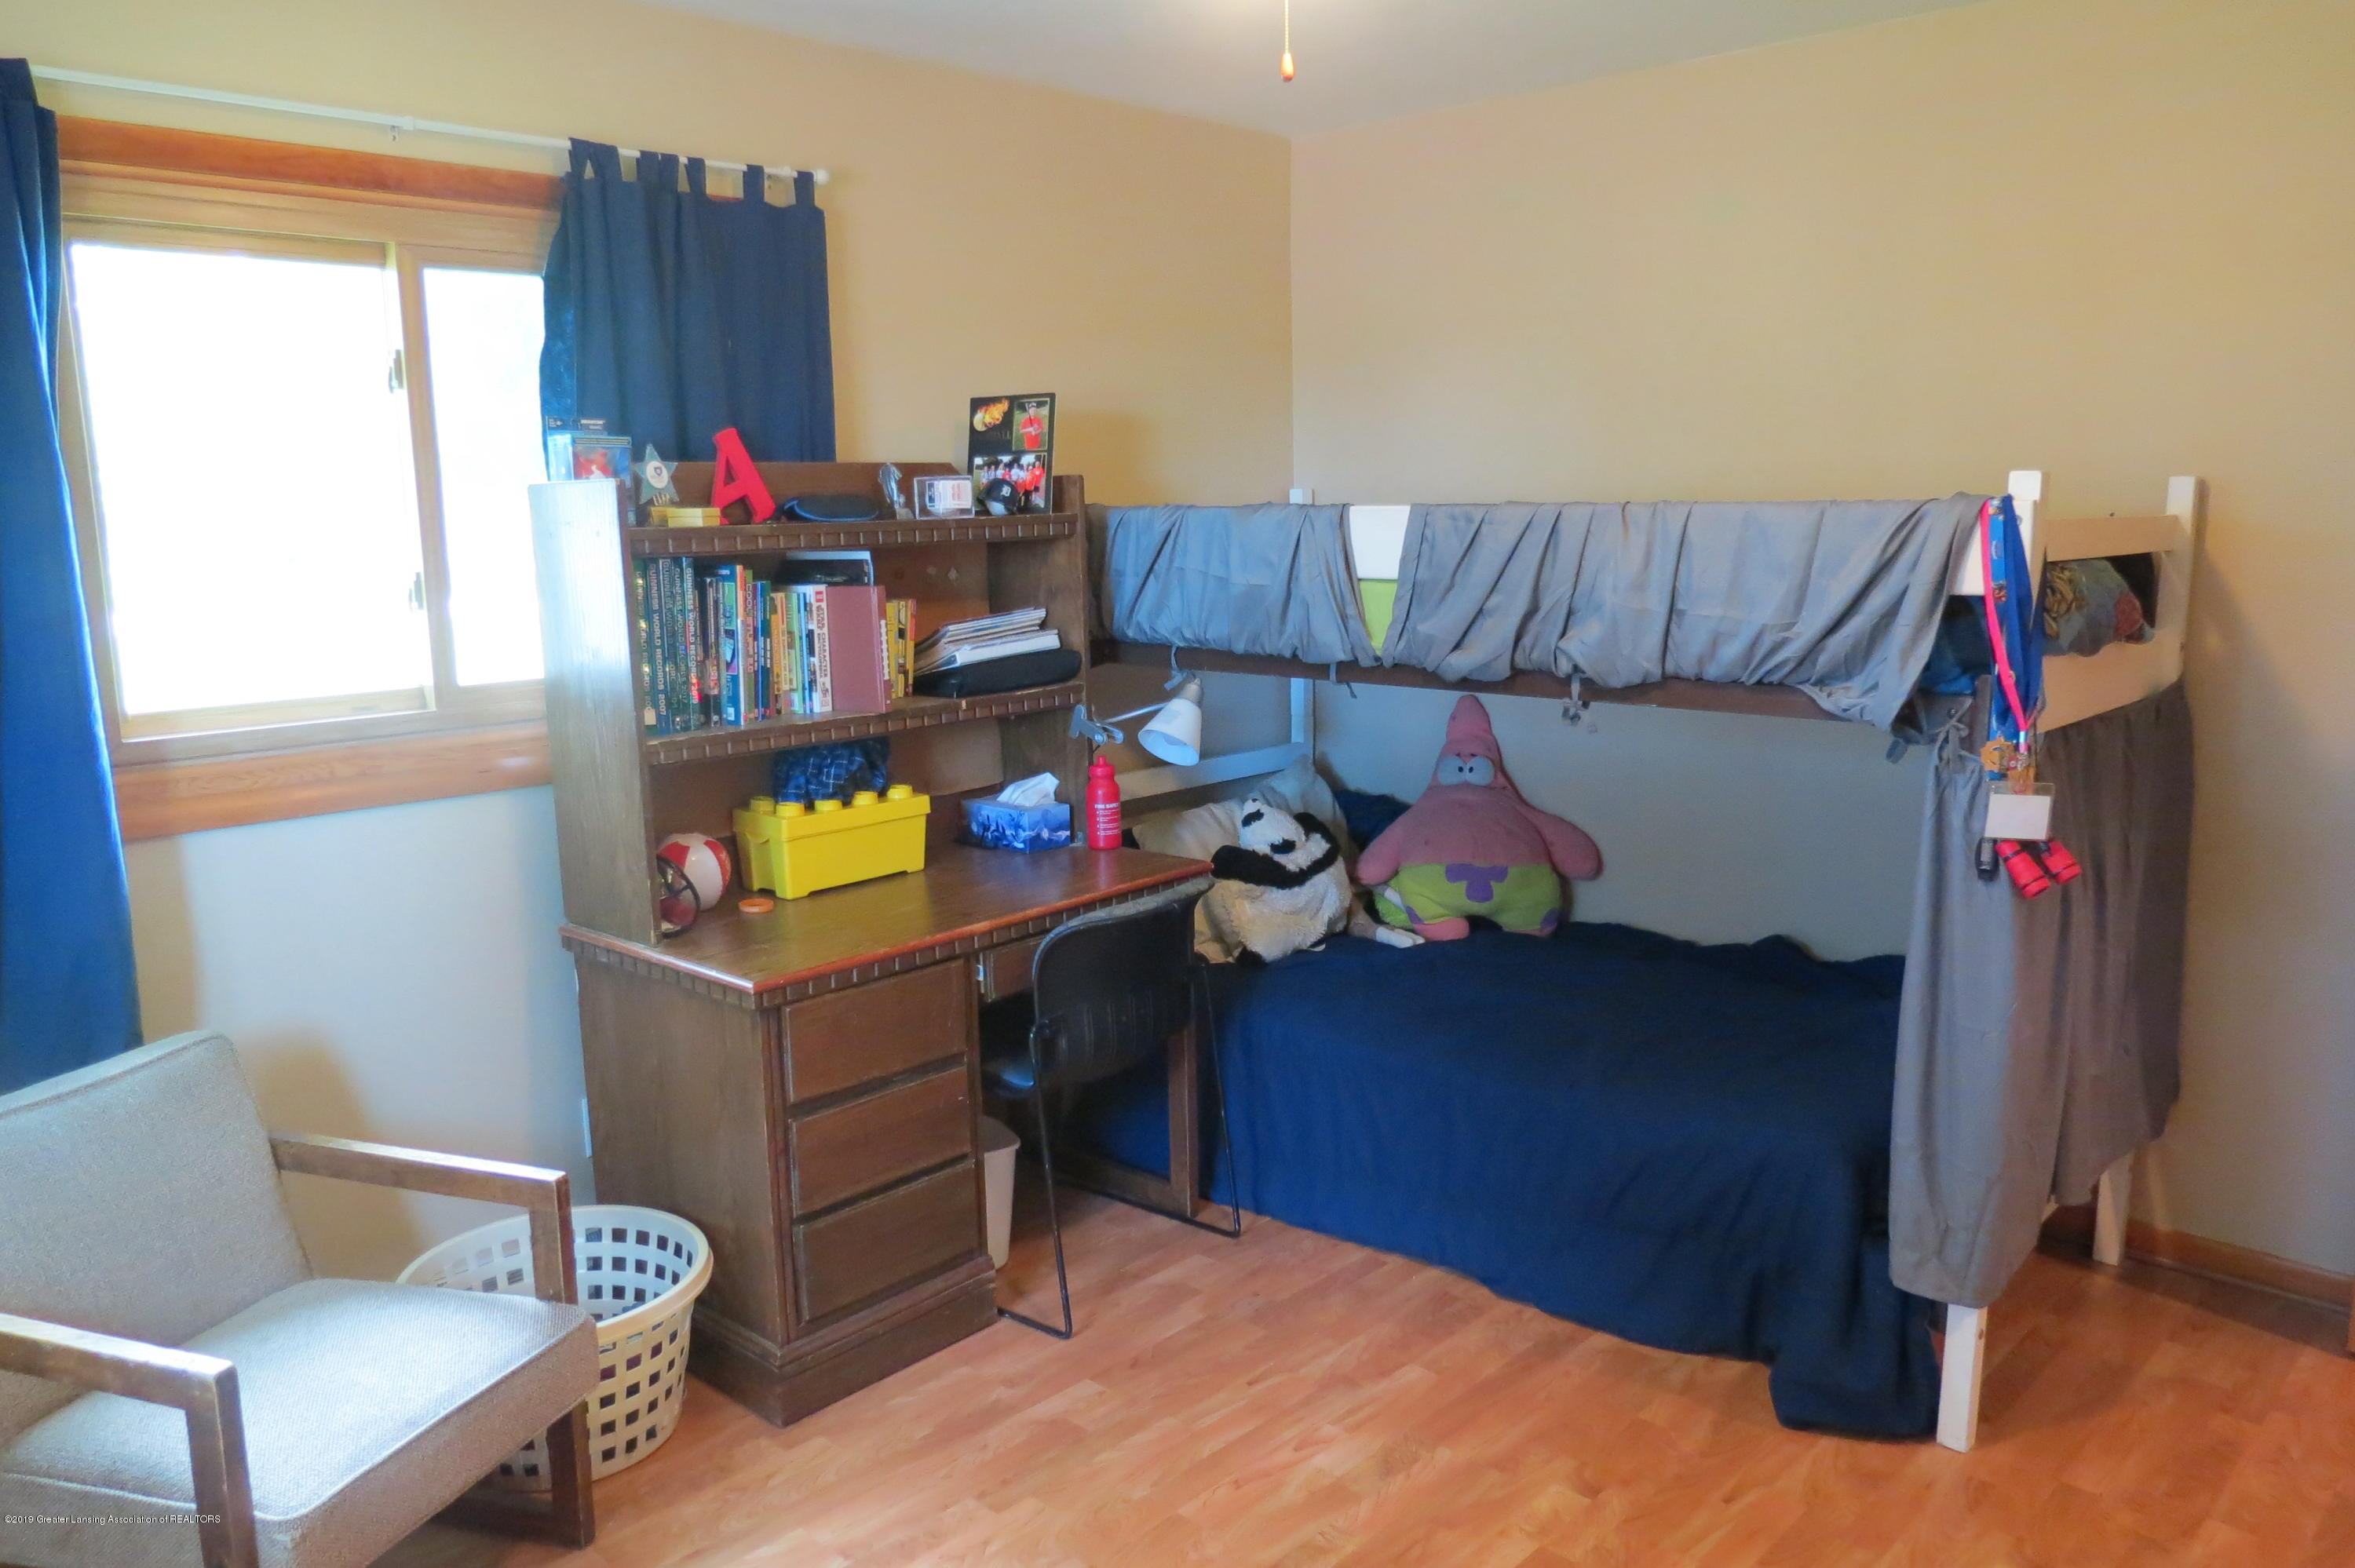 4007 N Shepardsville Rd - Bedroom - 22